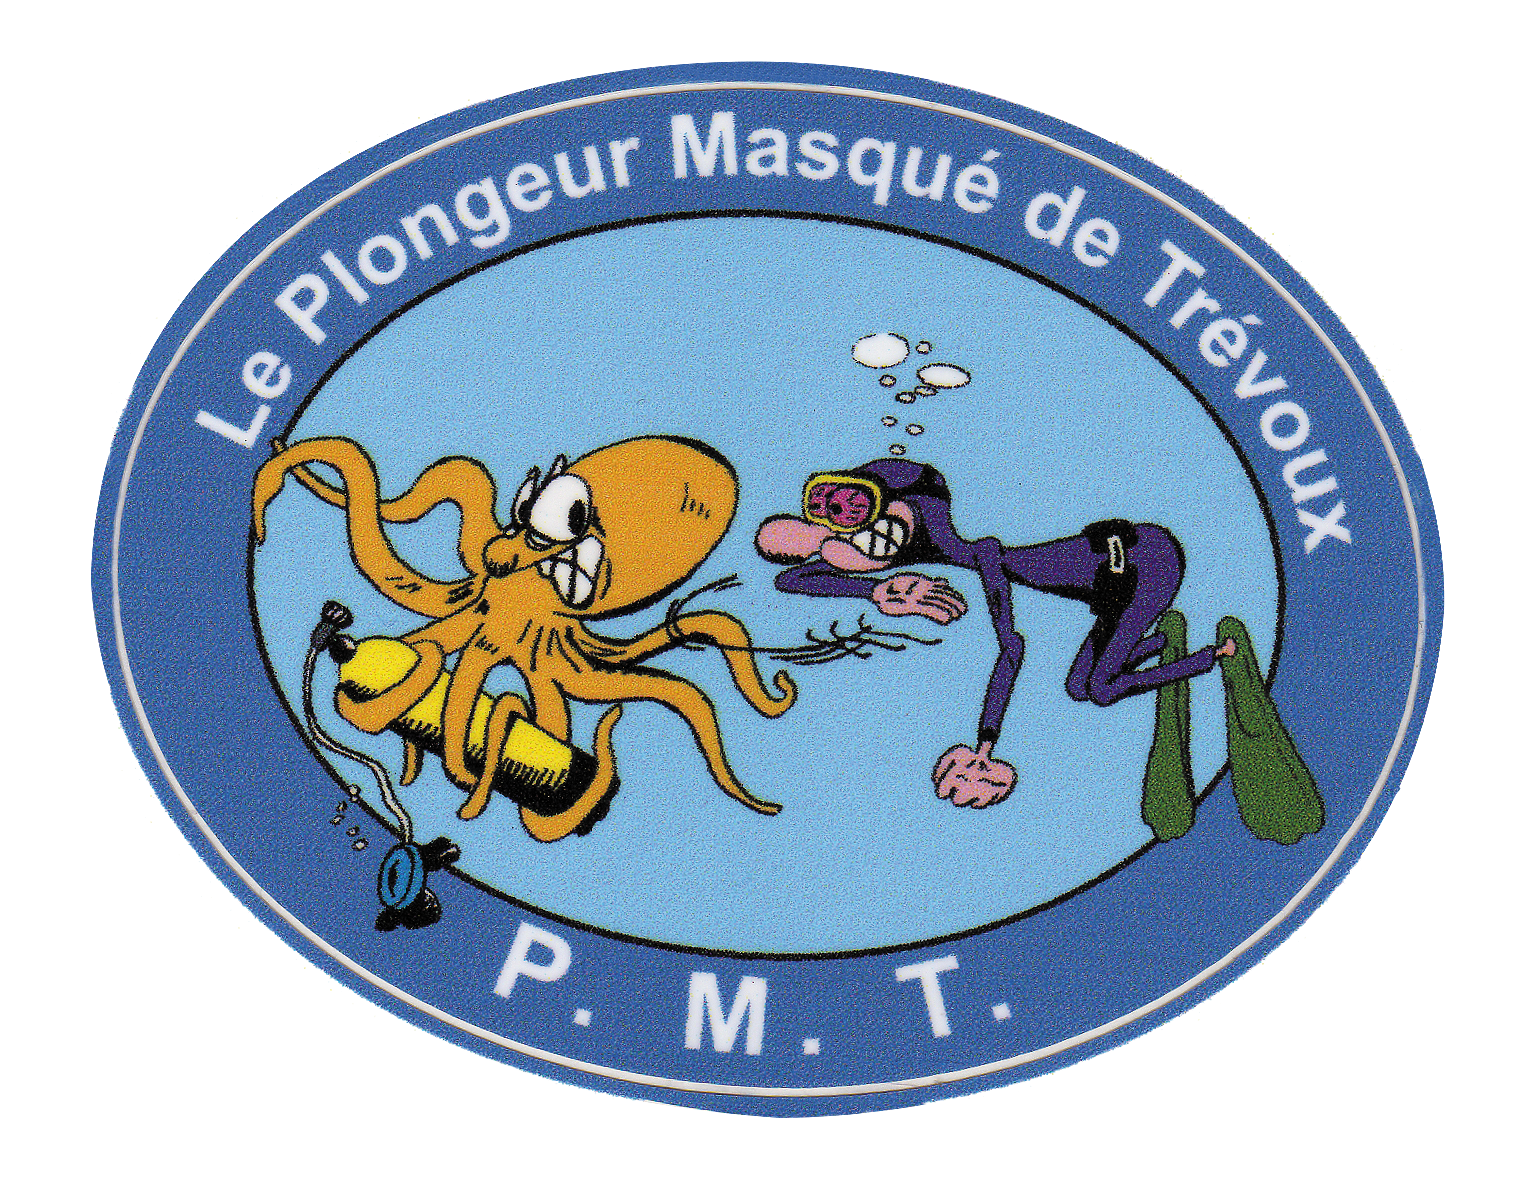 logo association PMT